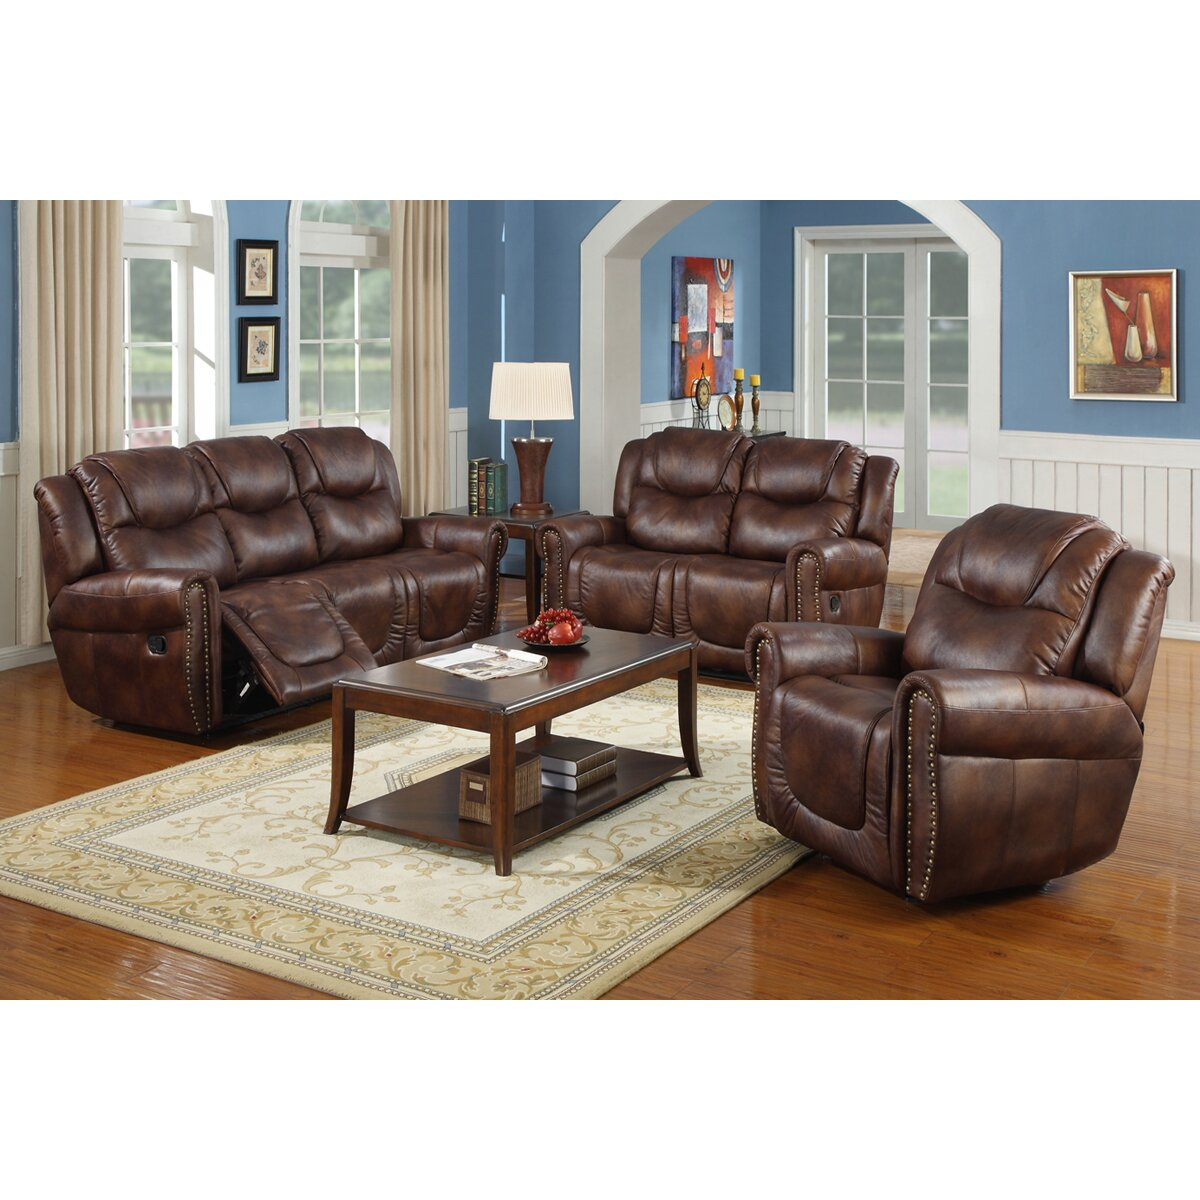 leather living room furniture sets toledo 3 bonded leather reclining living room sofa 16653 | TOLEDO 3 PIECE BONDED LEATHER RECLINING LIVING ROOM SOFA SET GS3700 BN 3PC